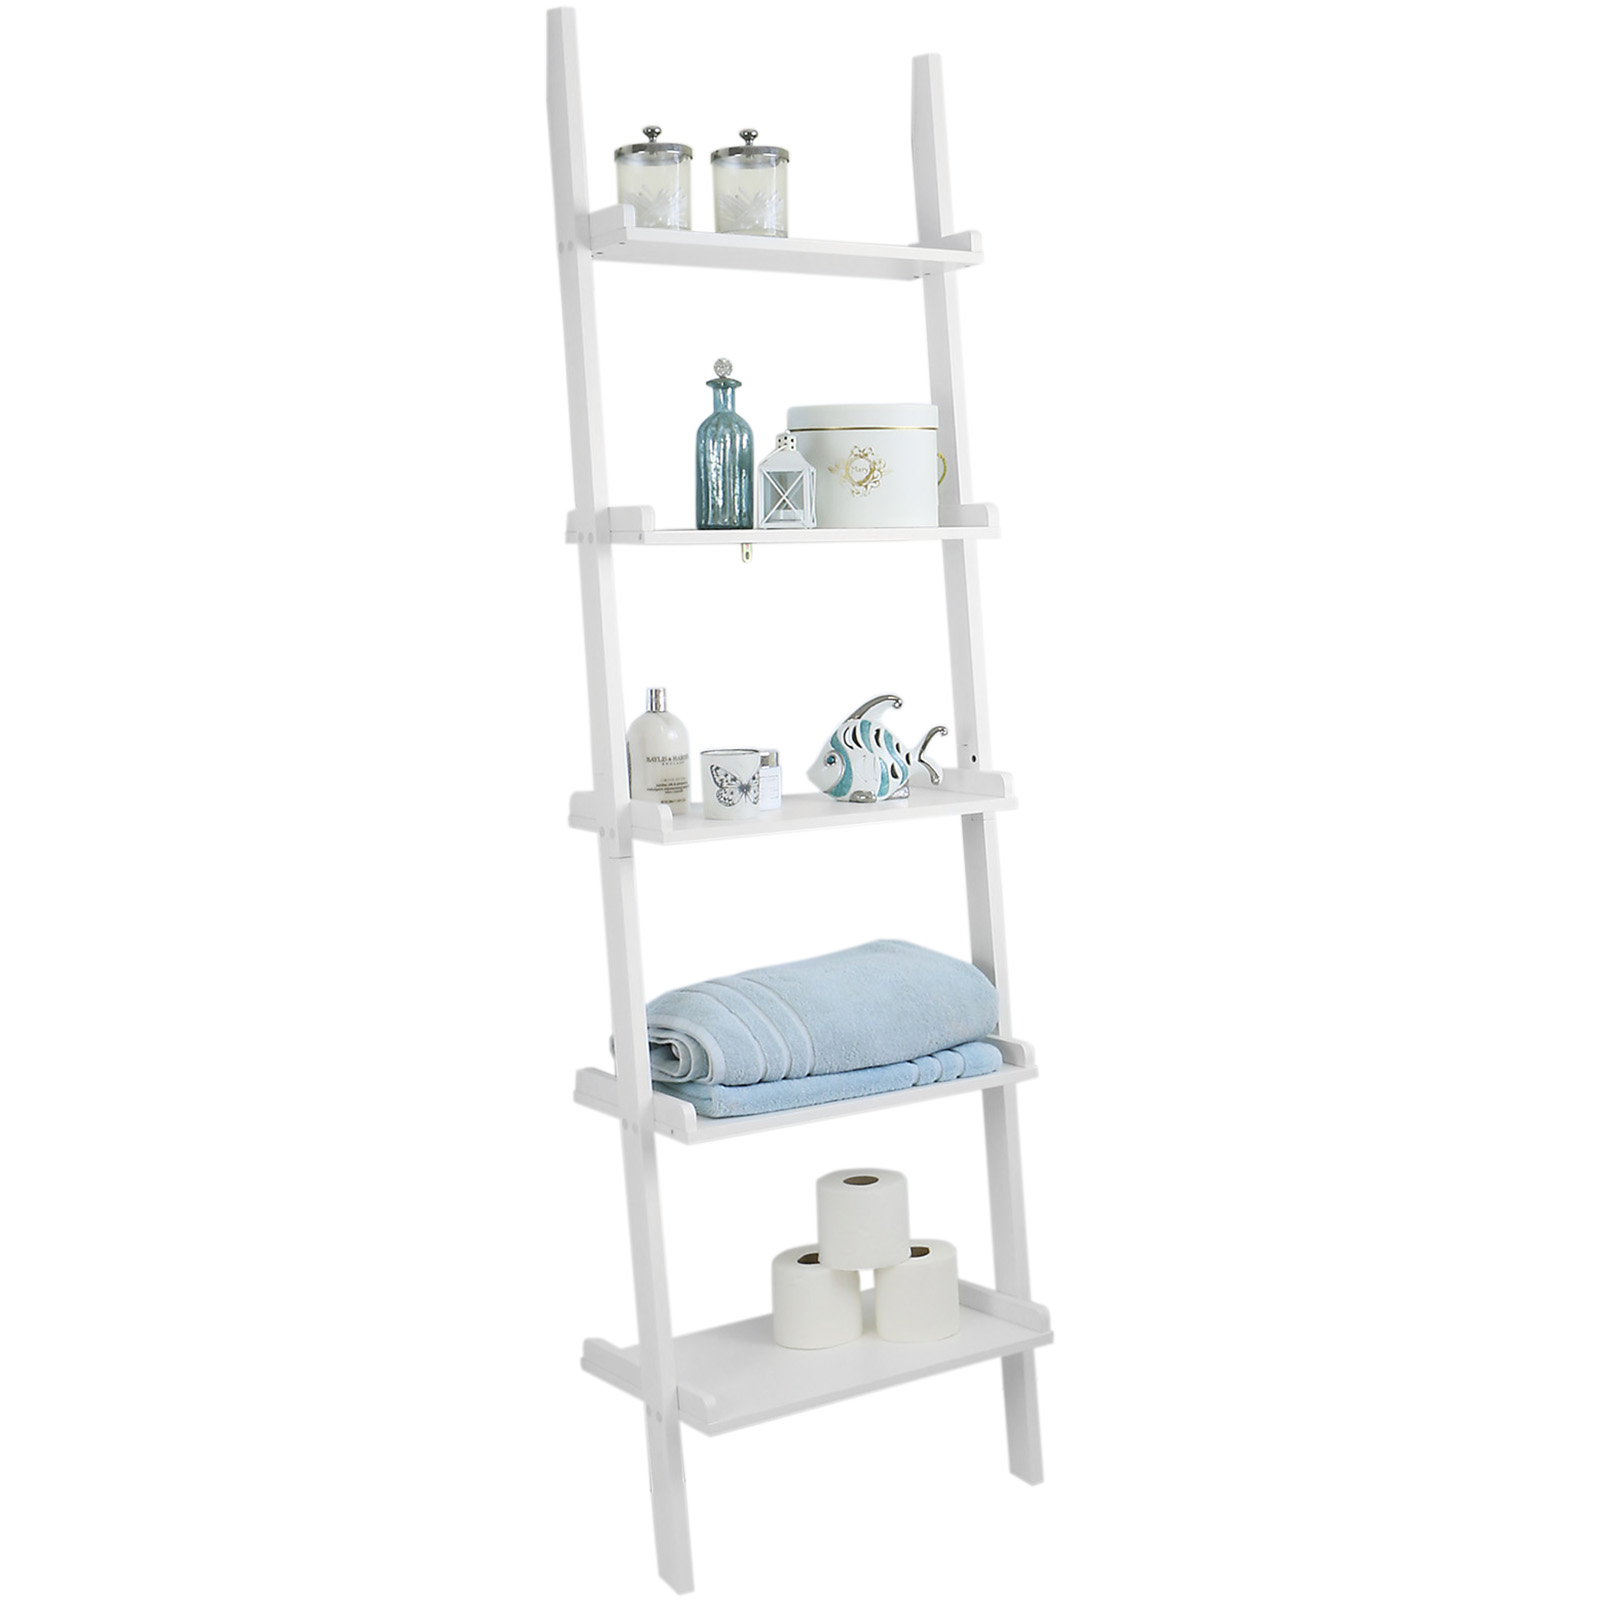 hartleys 5 tier white leaning ladder wall shelf shelving bookcase display unit ebay. Black Bedroom Furniture Sets. Home Design Ideas